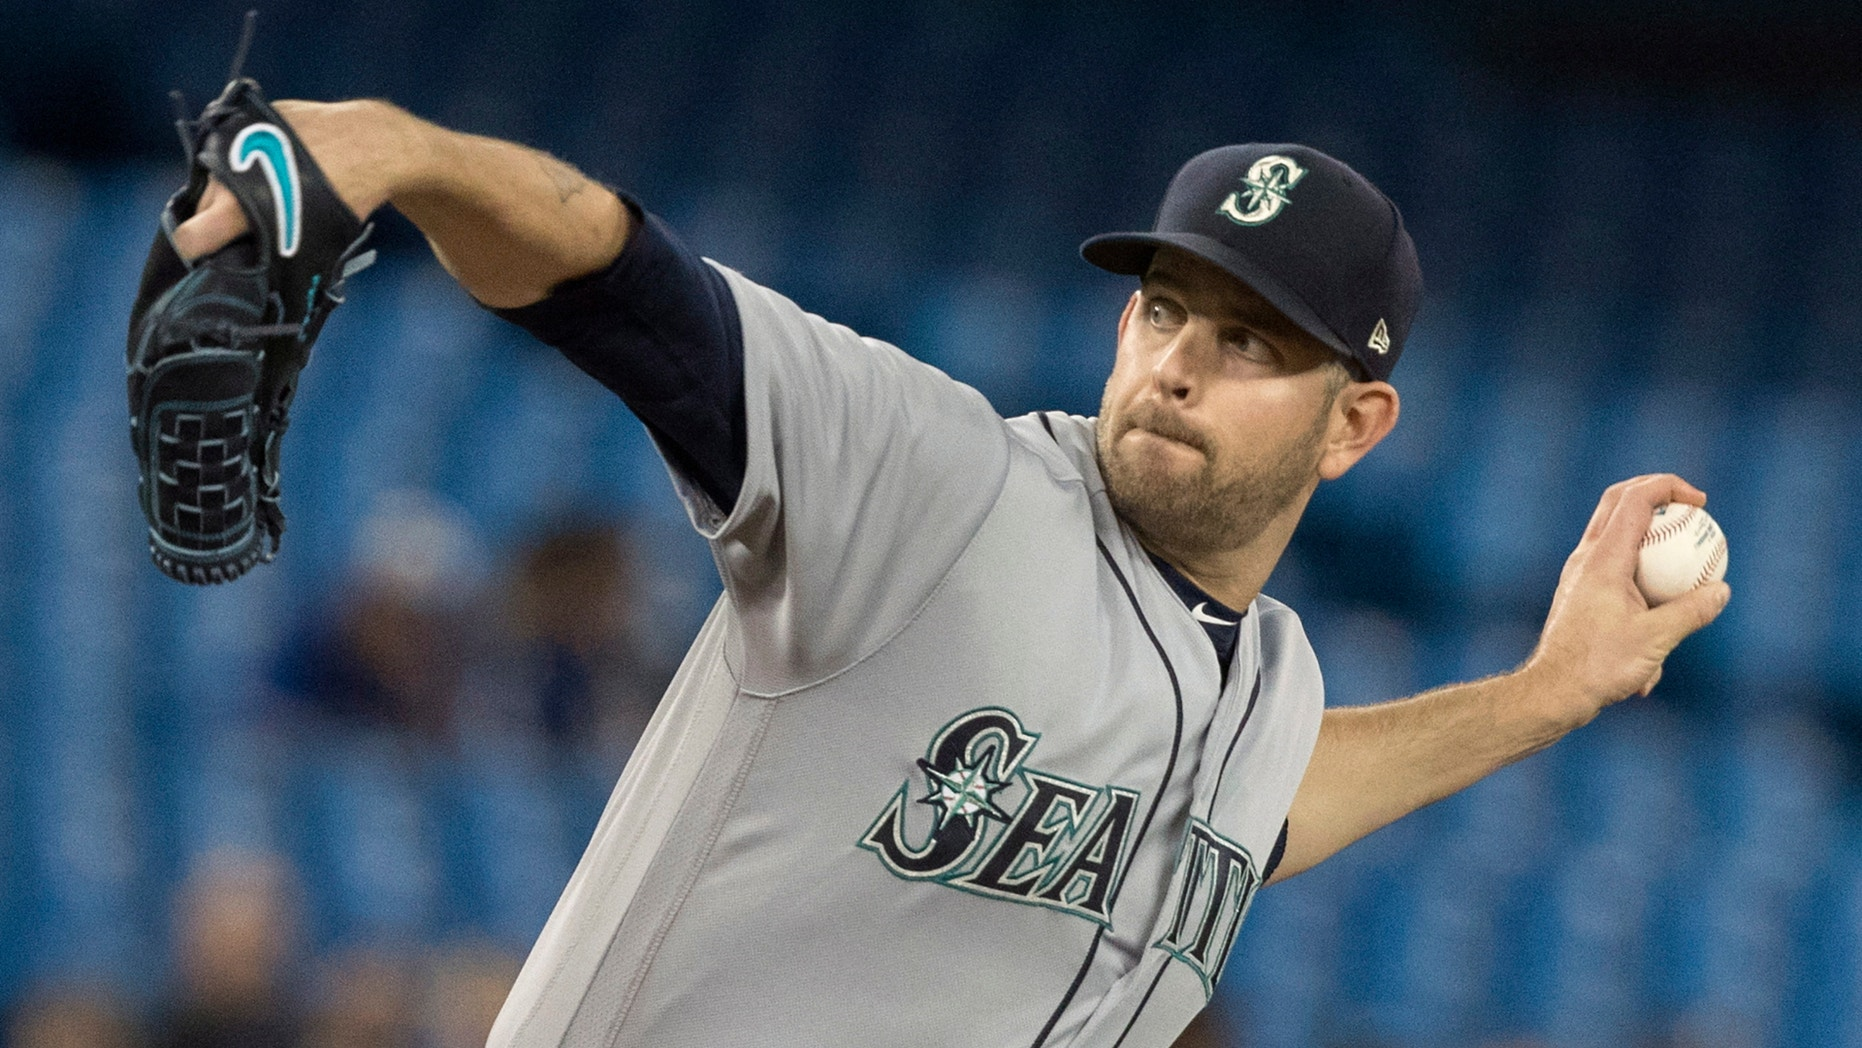 Seattle's James Paxton joined Dick Fowler of the 1945 Philadelphia Athletics as the only Canadians to throw a no-hitter.